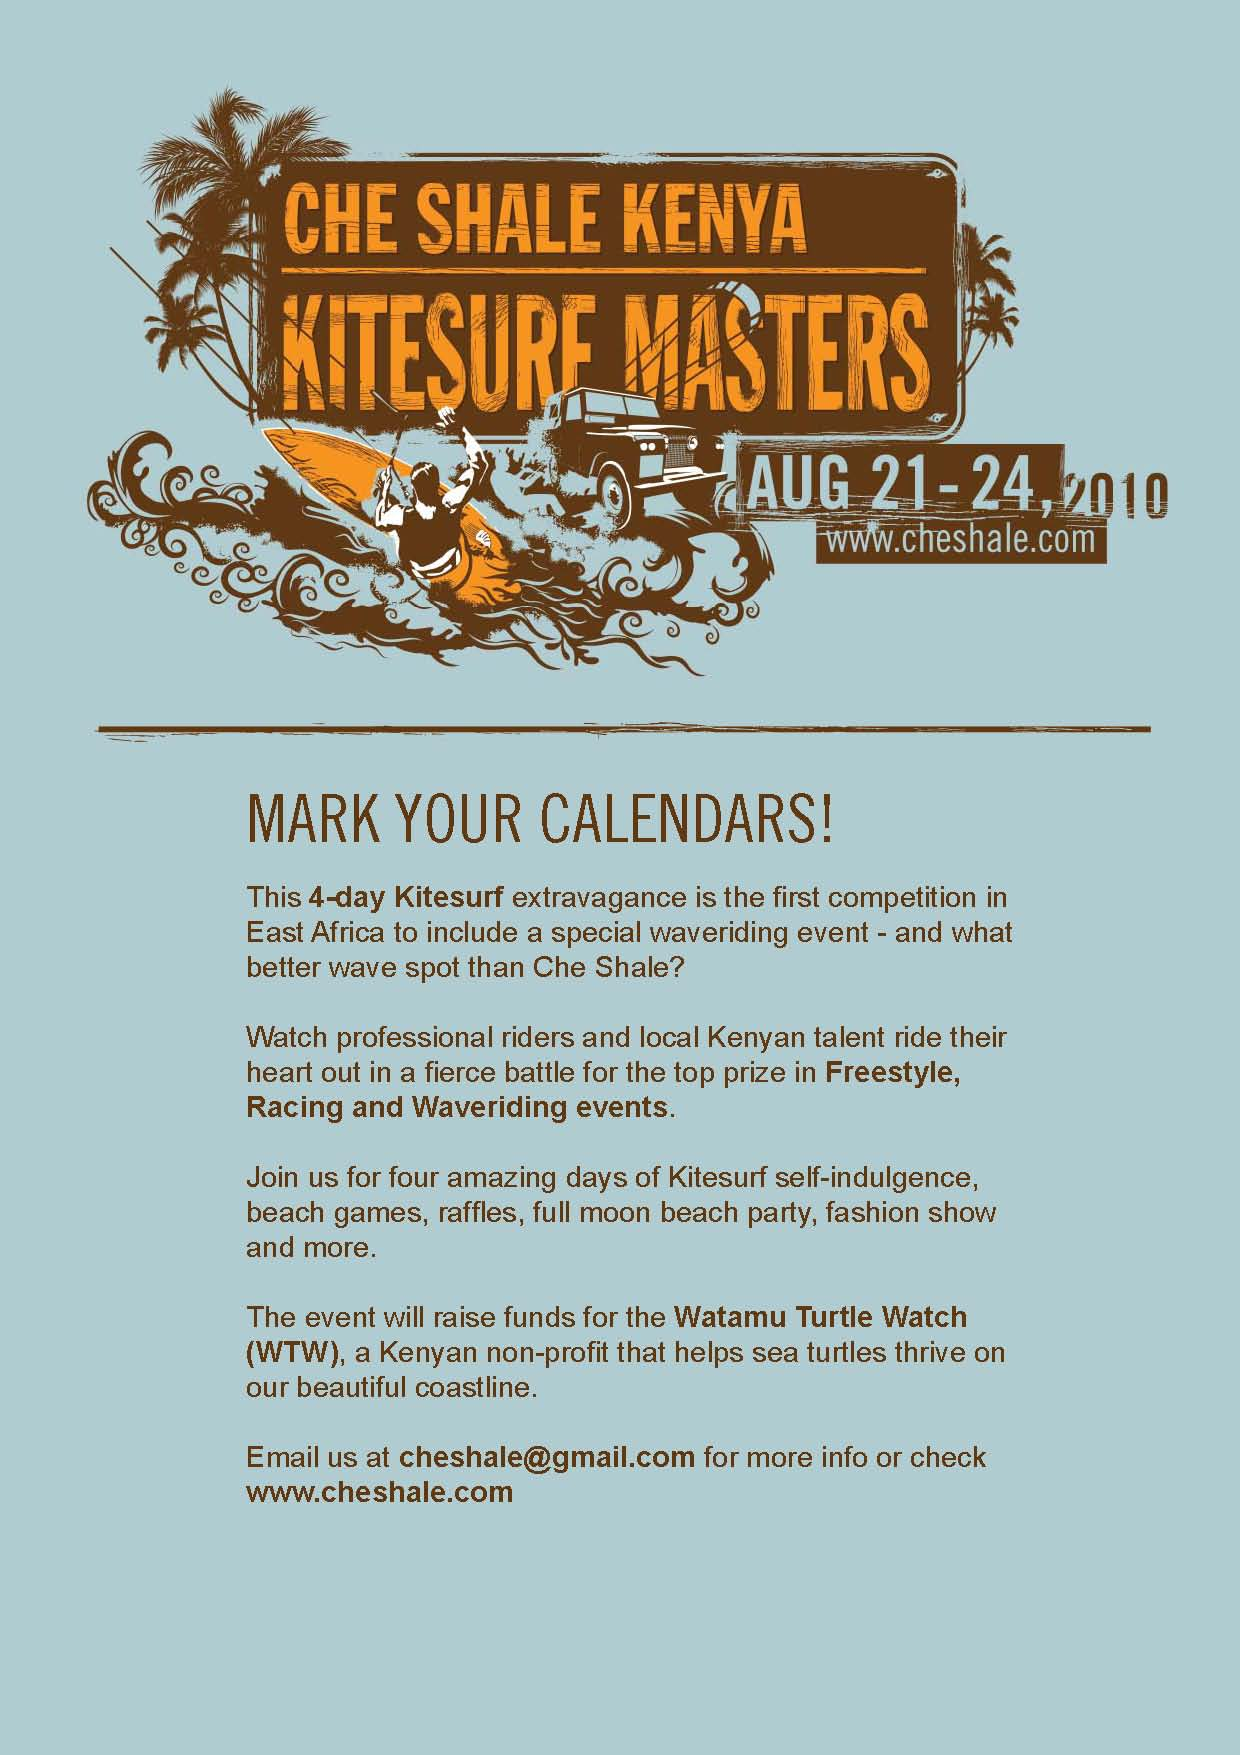 Che Shale KITE MASTERS_ Save the Date (1).jpg